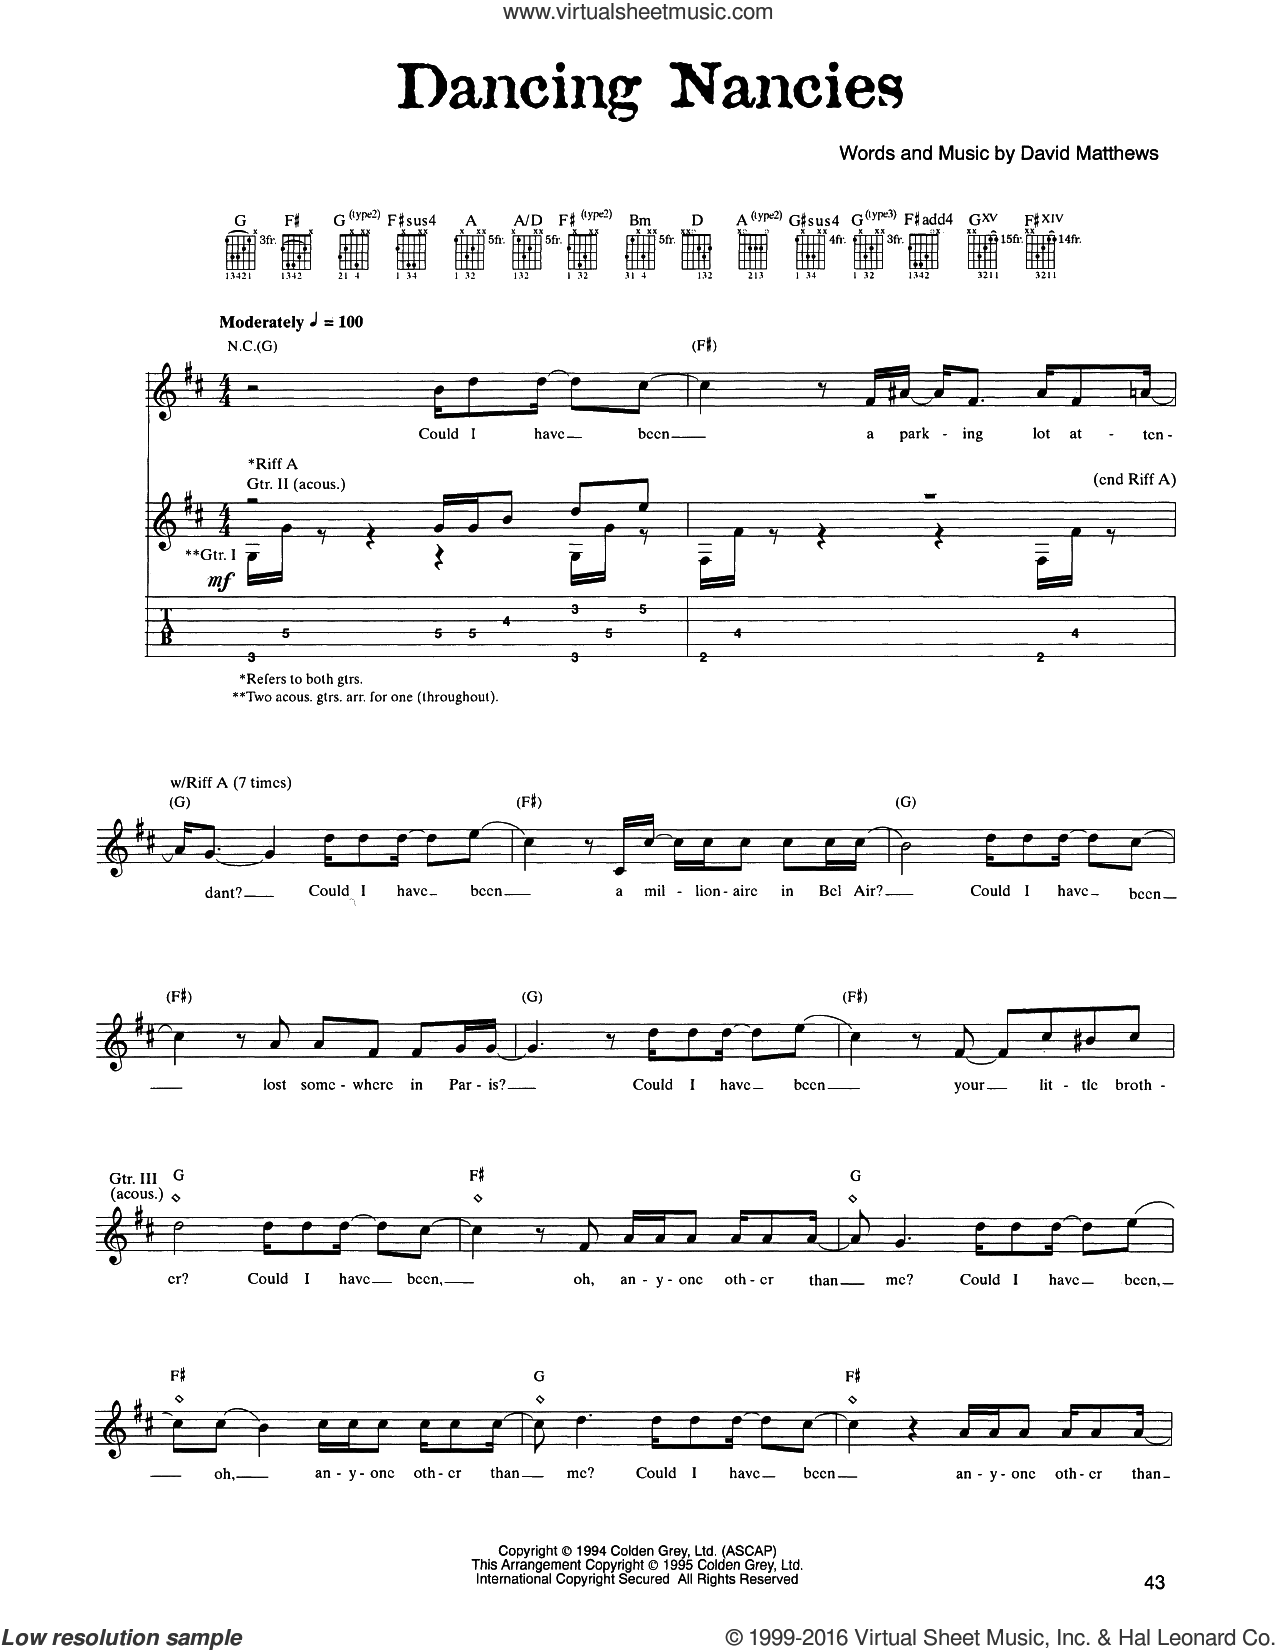 Dancing Nancies sheet music for guitar (tablature) by Dave Matthews Band